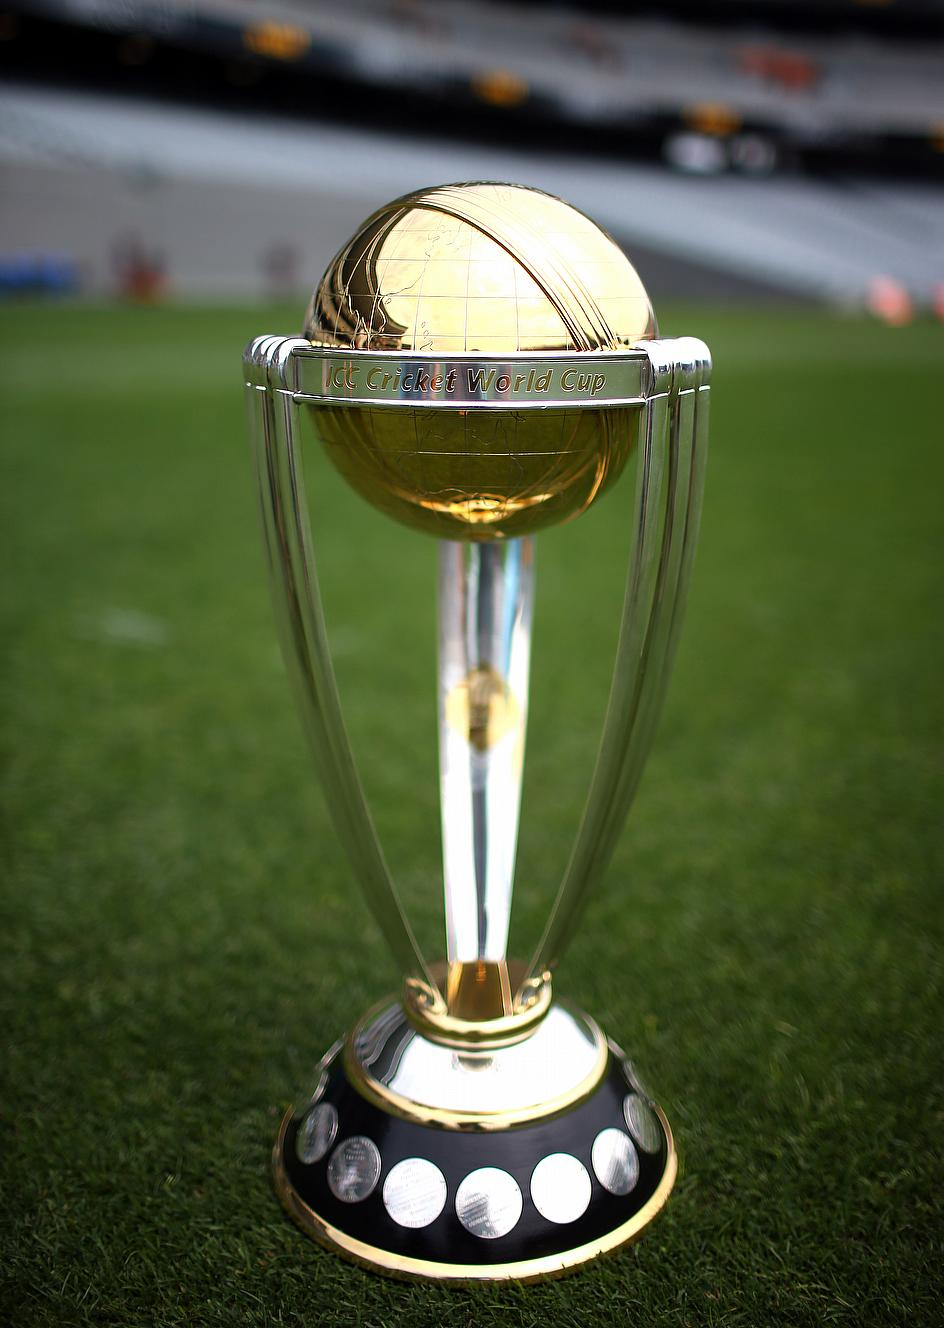 Icc Cricket World Cup Trophy Kid  Image Kid